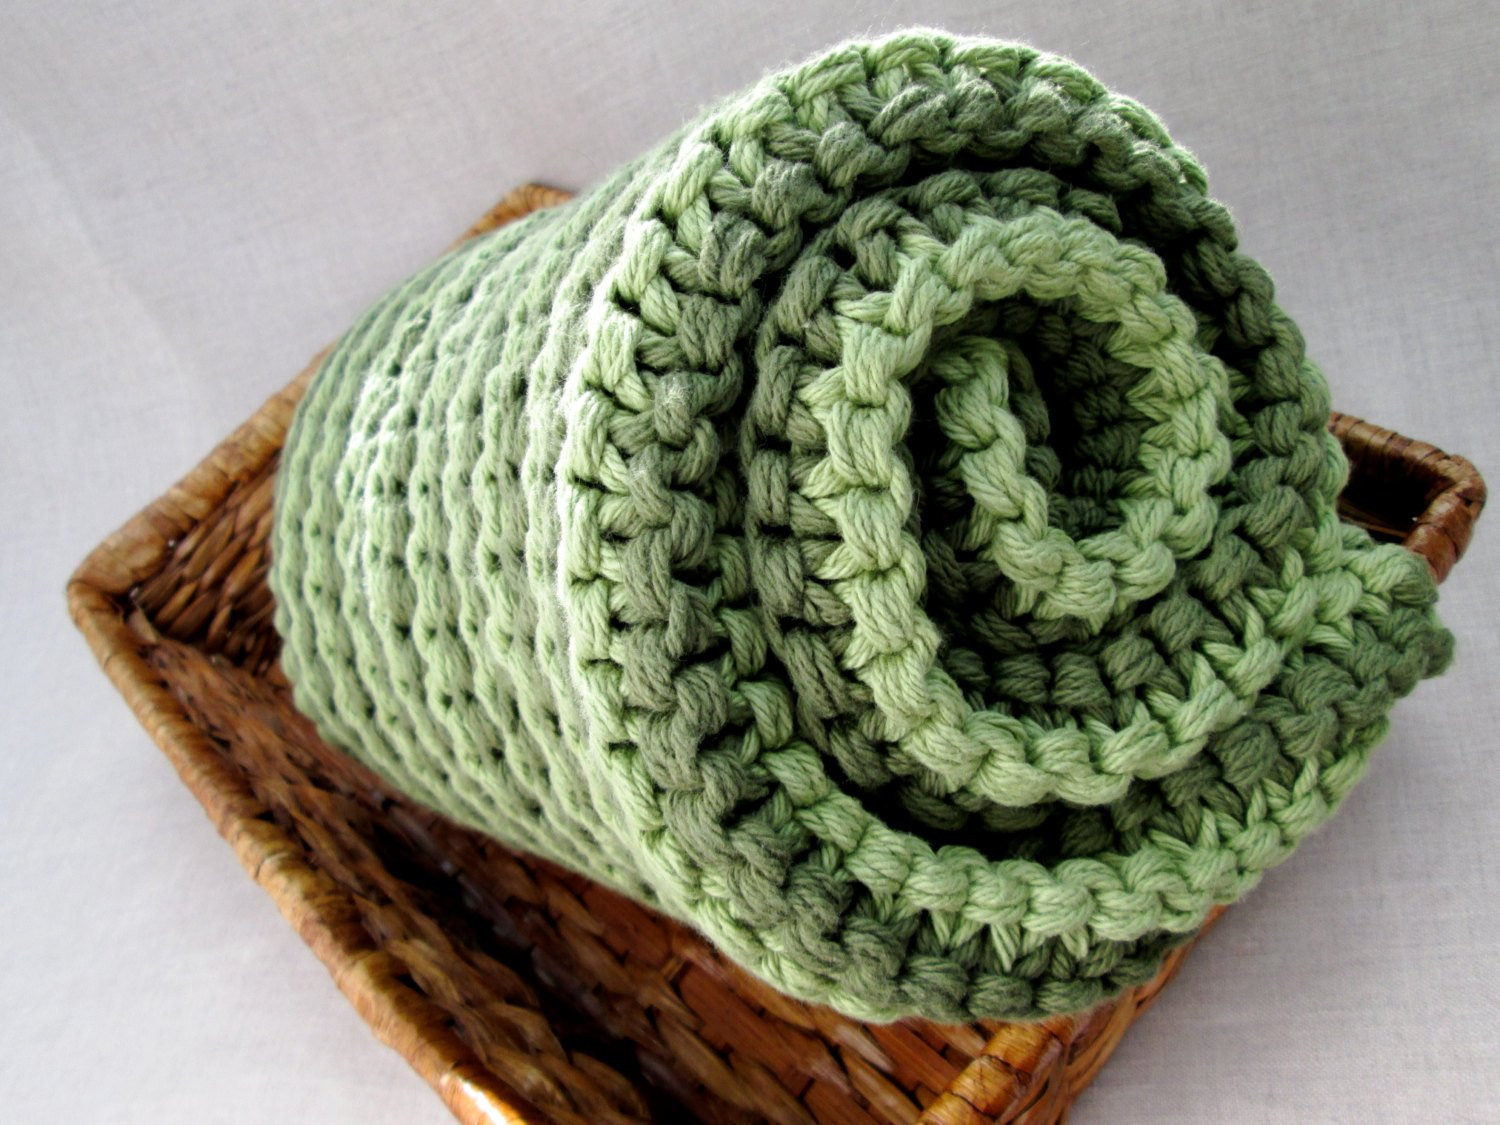 Chunky Knit Baby Blanket Unique Green Stripes Baby Blanket Chunky Knit Blanket Basket Of Gorgeous 41 Pictures Chunky Knit Baby Blanket